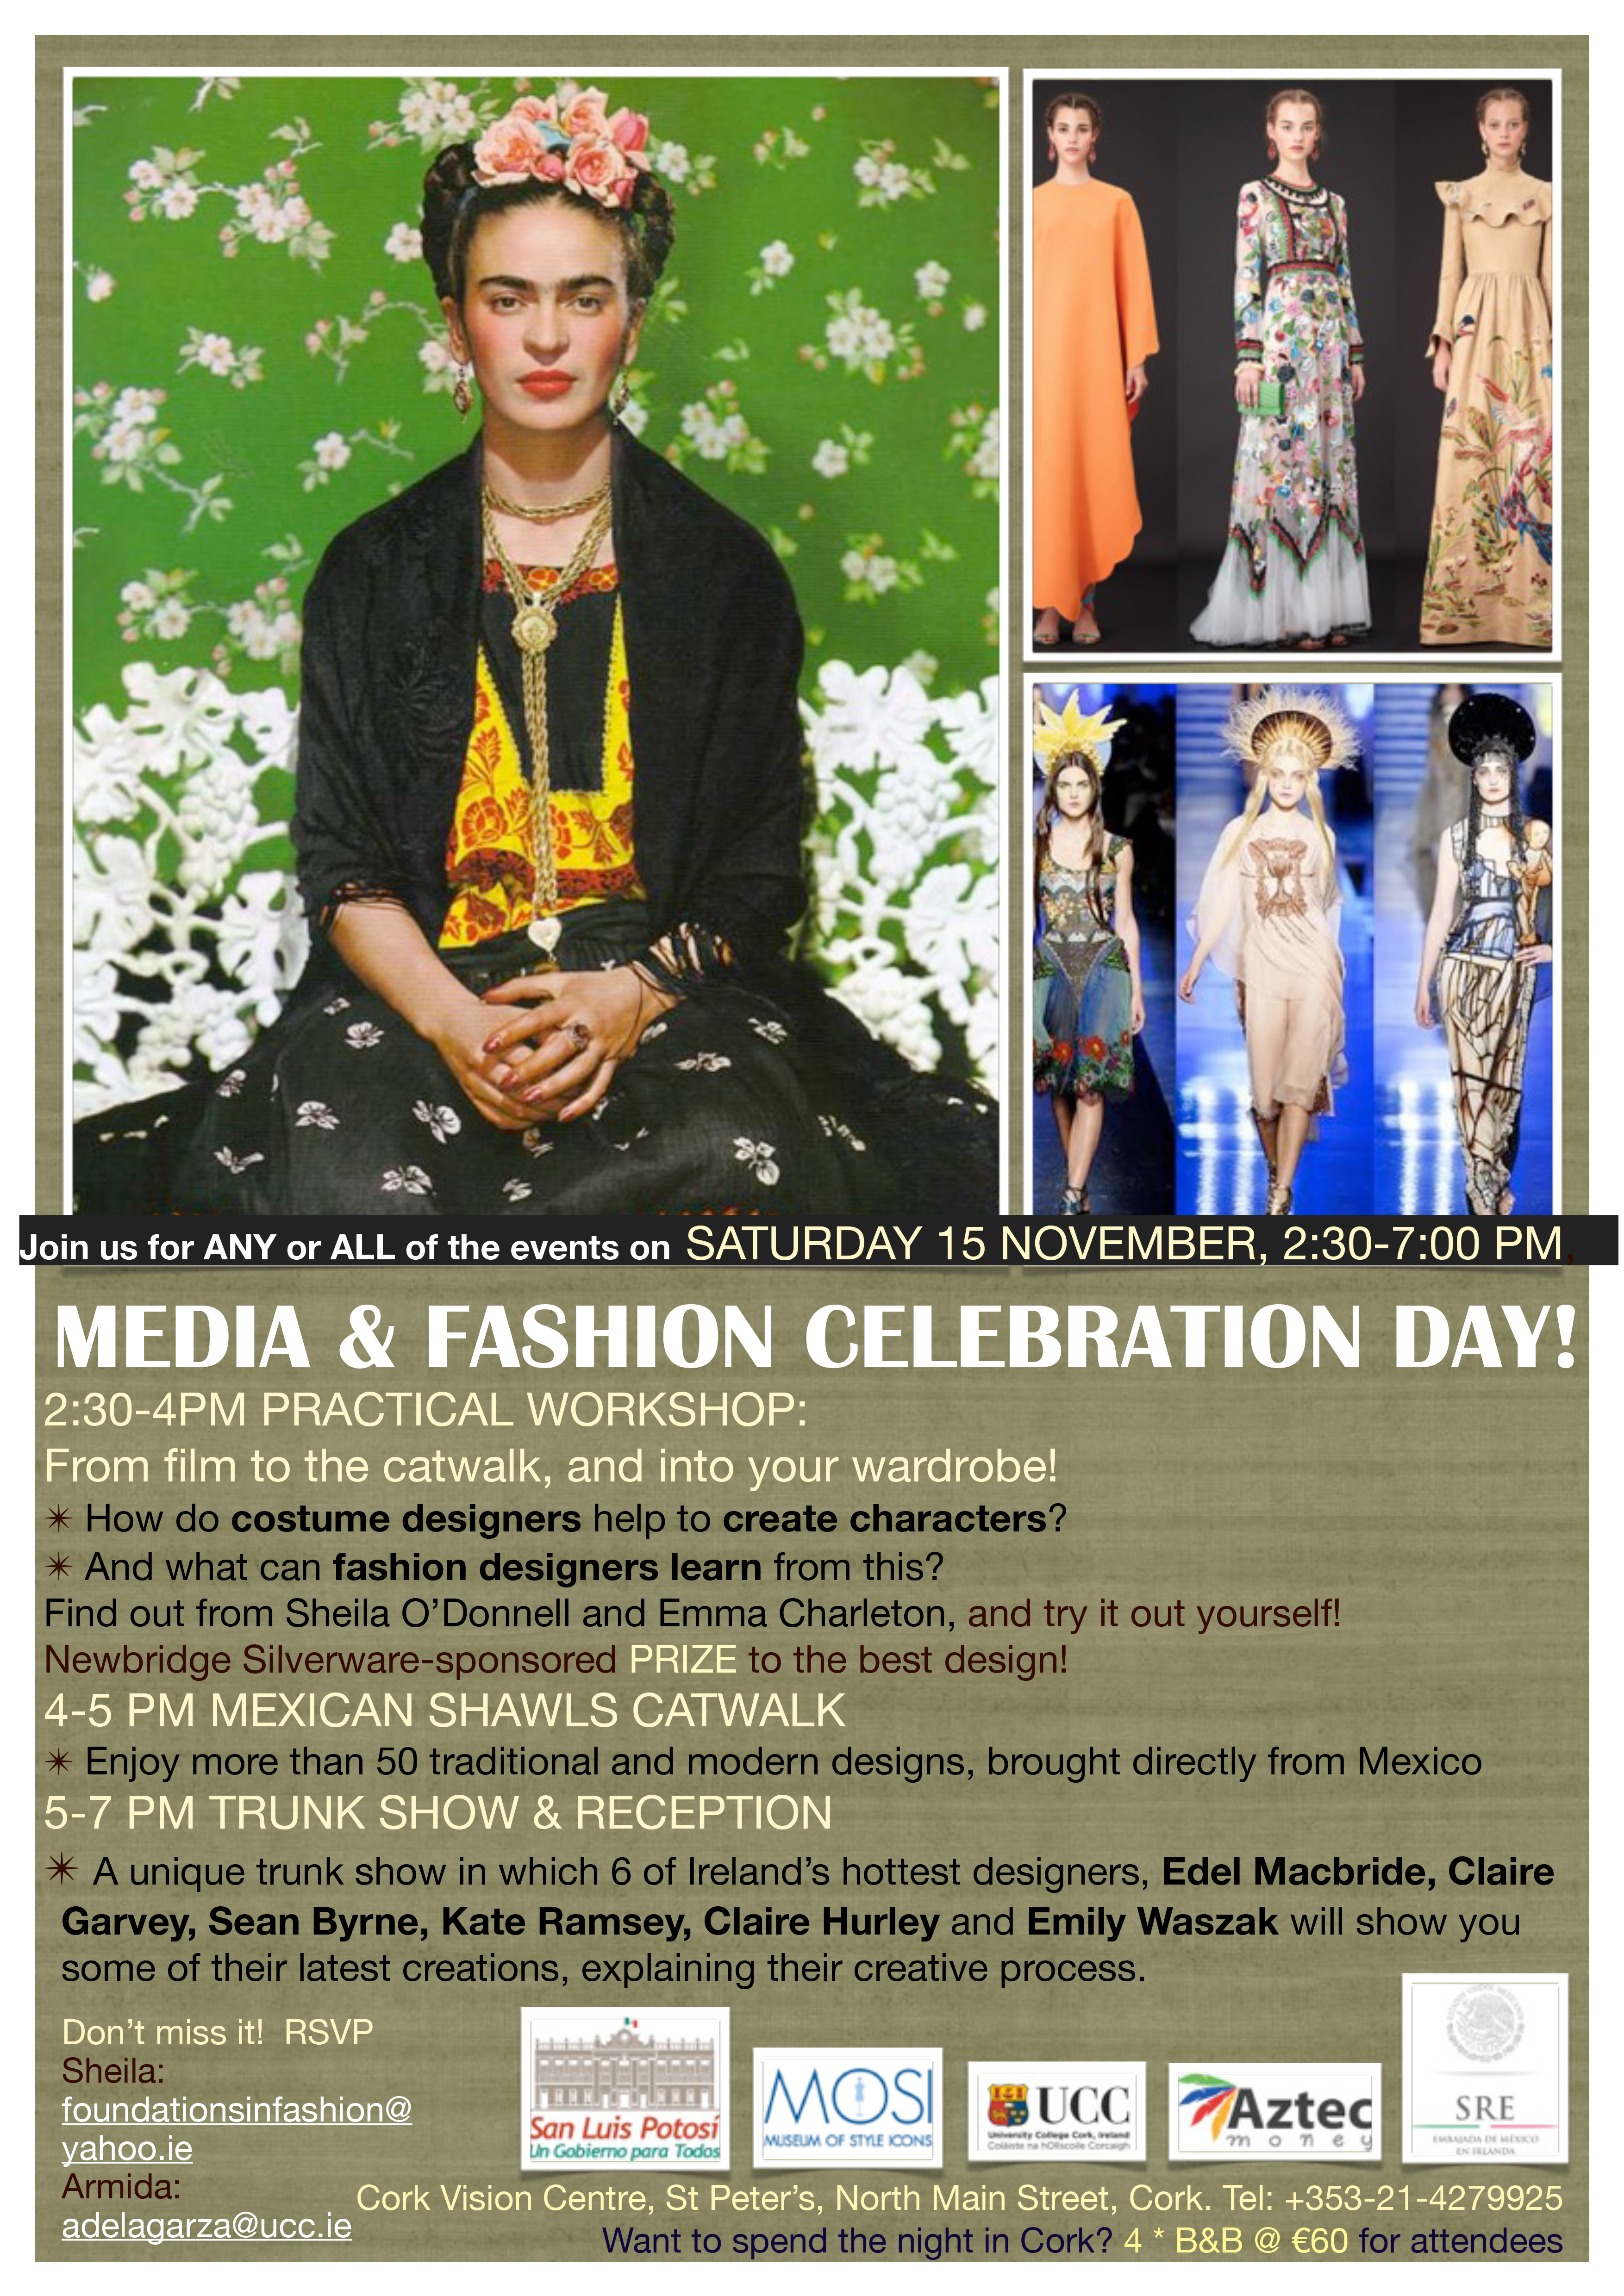 Media & Fashion Celebration